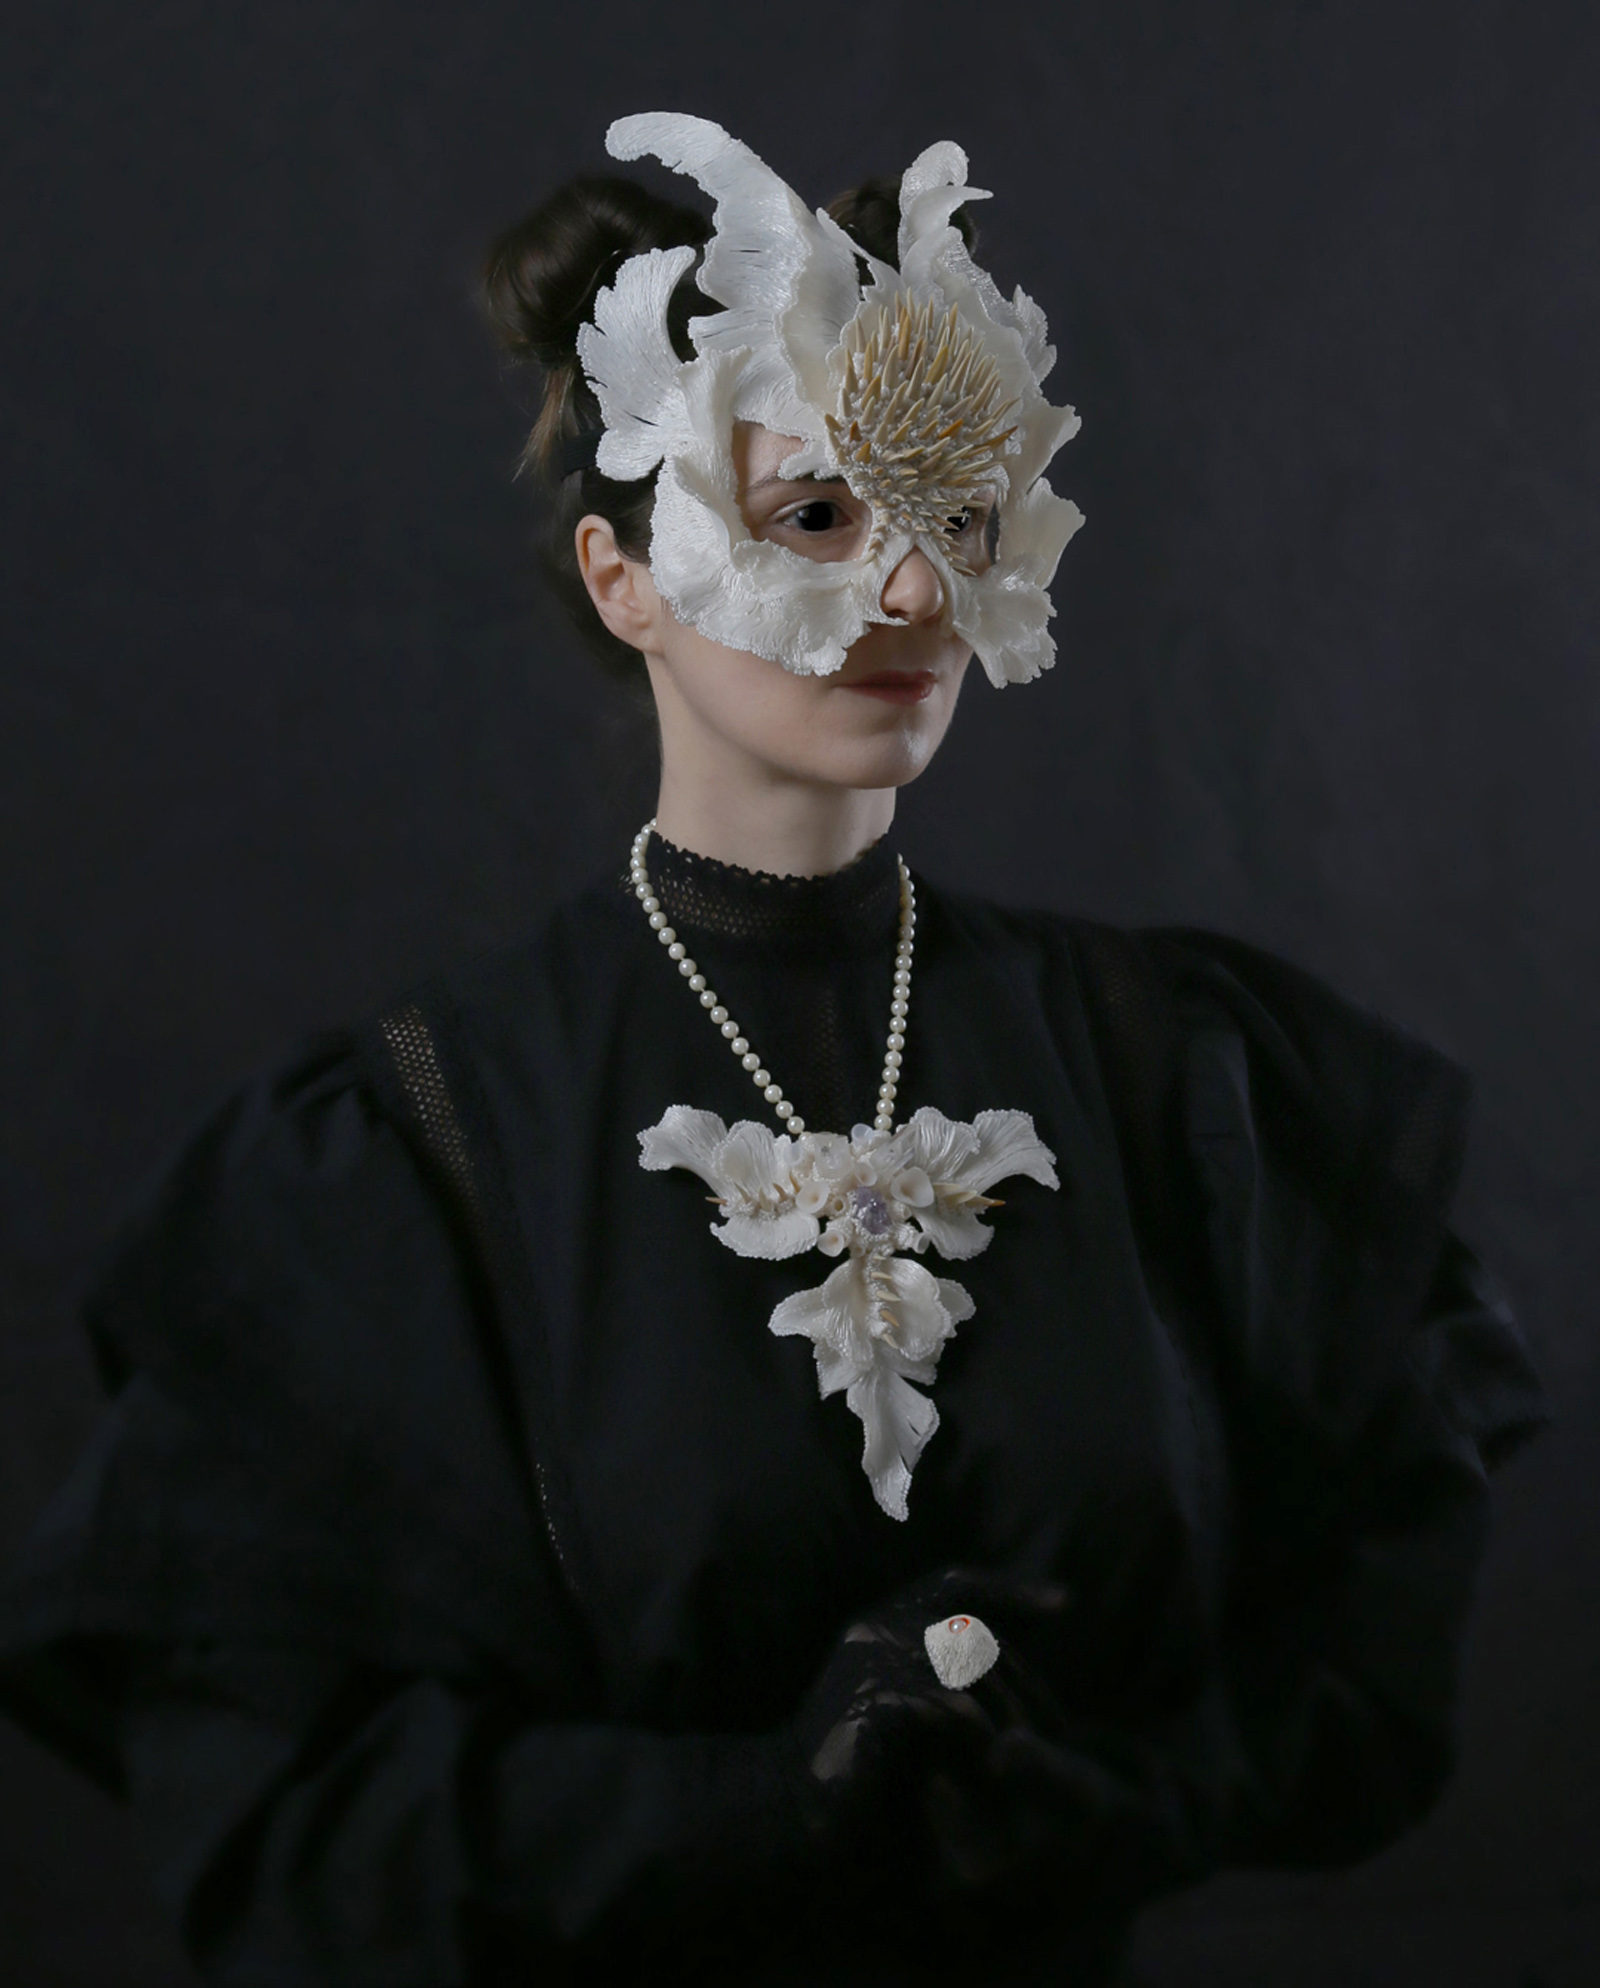 """The Lonely Beast"" I Mask, 2019 I PLA, fossil shark teeth & ""Icarus I"" I Necklace, 2019 I PLA, fossil shark teeth, crystals, second hand pearls, silver I Photo: Attai Chen"